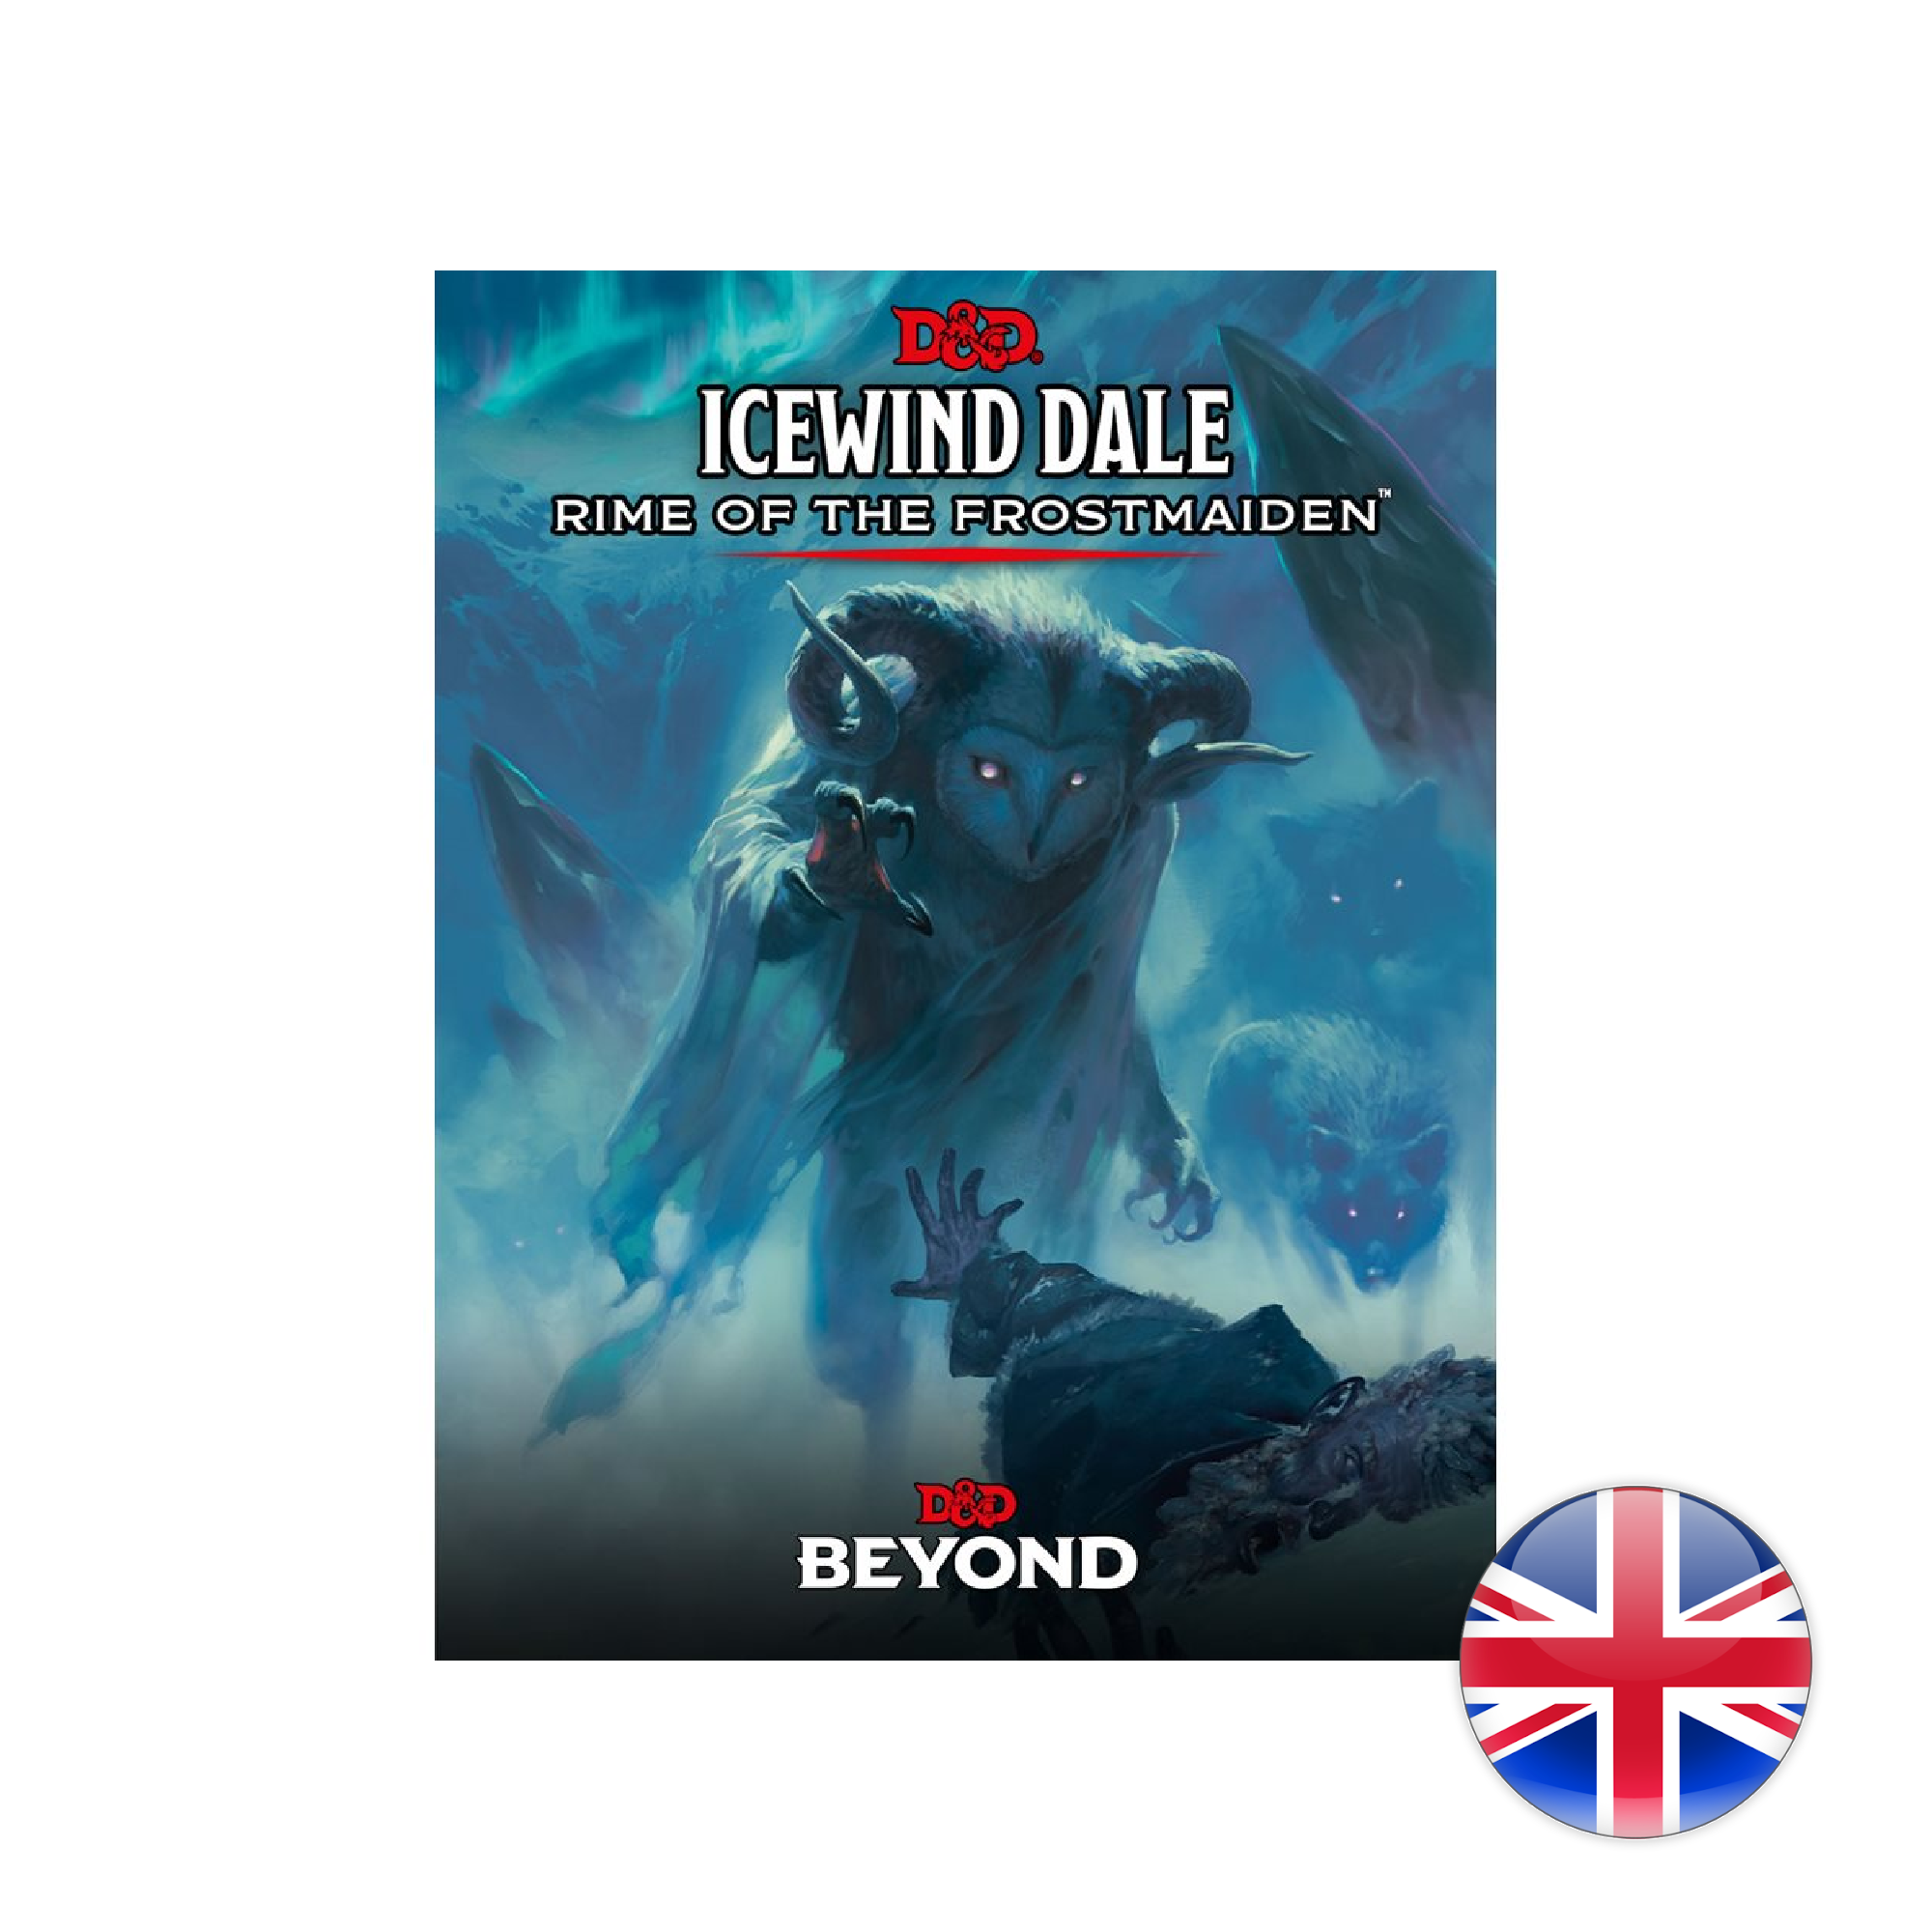 Wizards of the Coast D&D Dungeons & Dragons: Icewind Dale - Rime of the Frostmaiden